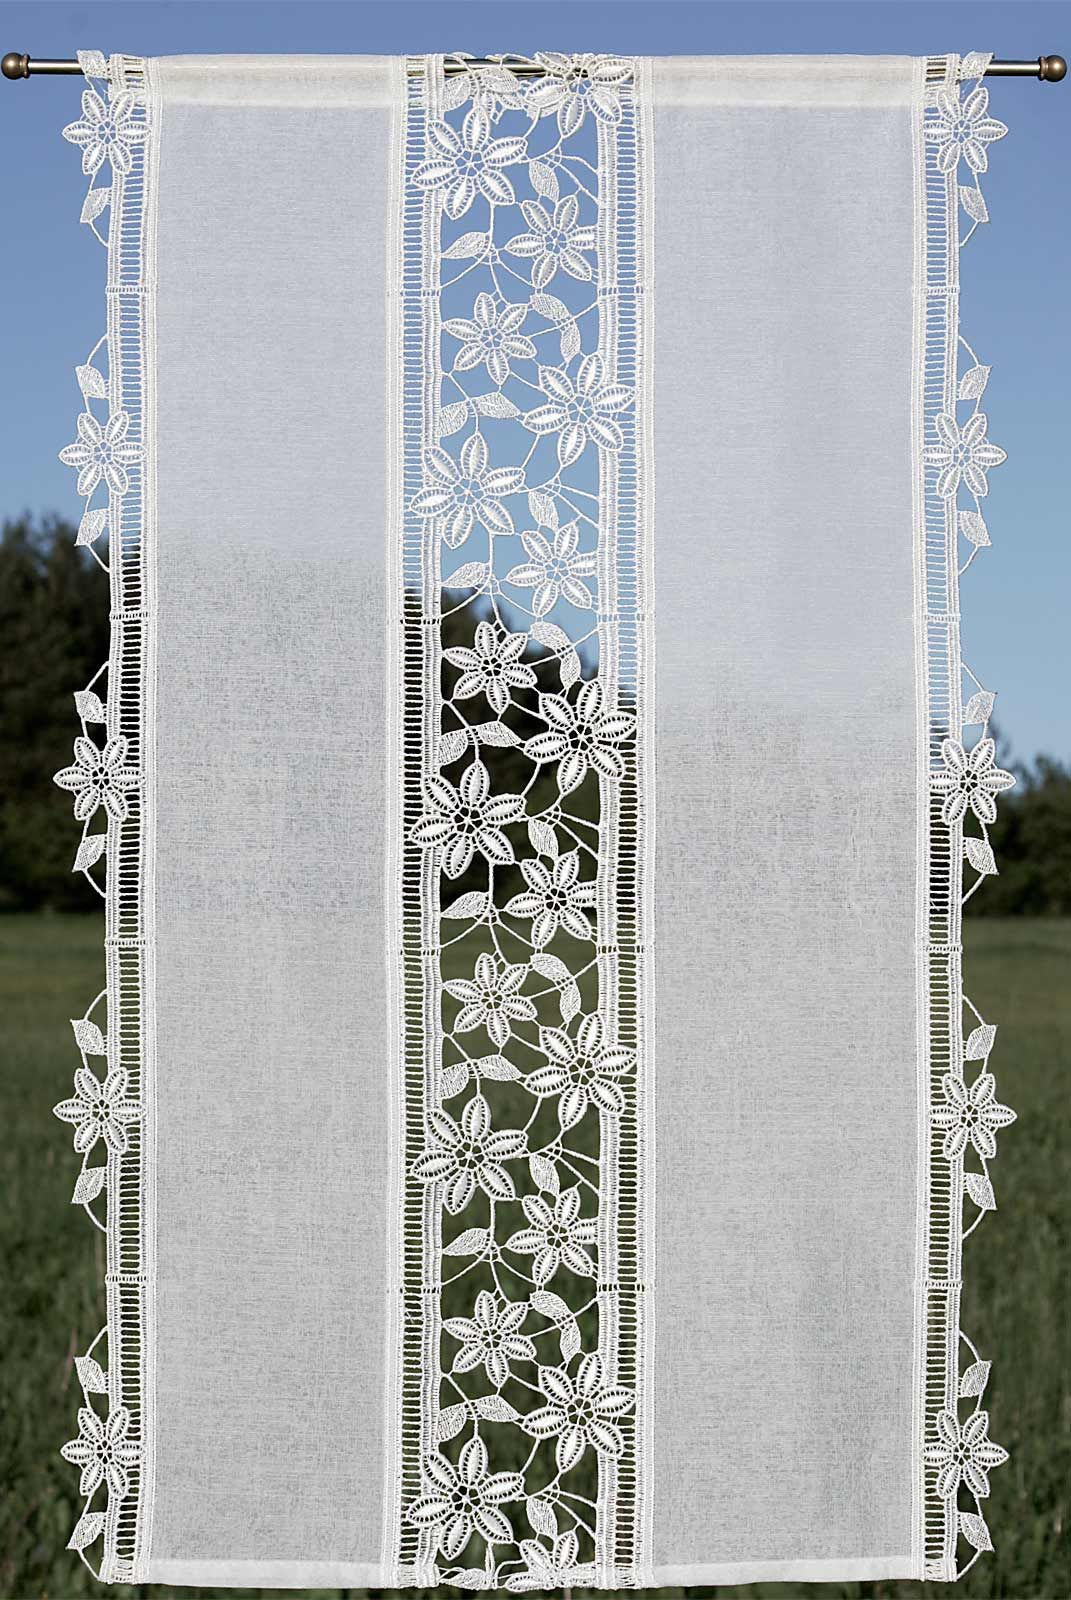 Cutwork Flowers Connecting Translucent Panels In 2020